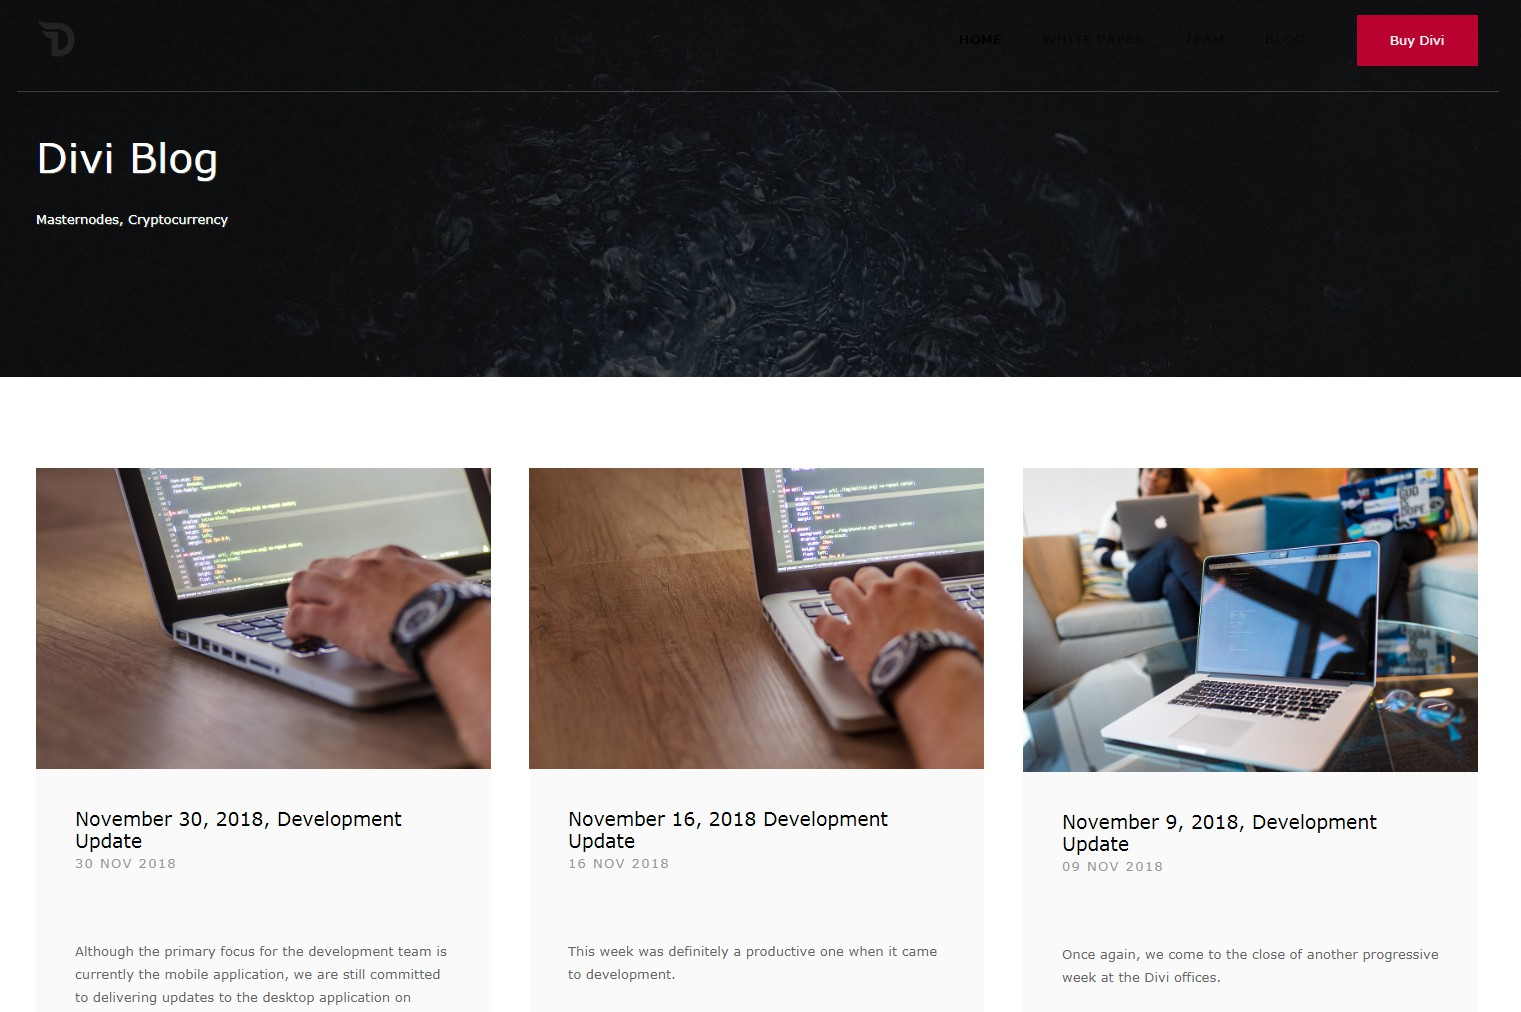 Ghost theme for the Divi Blog